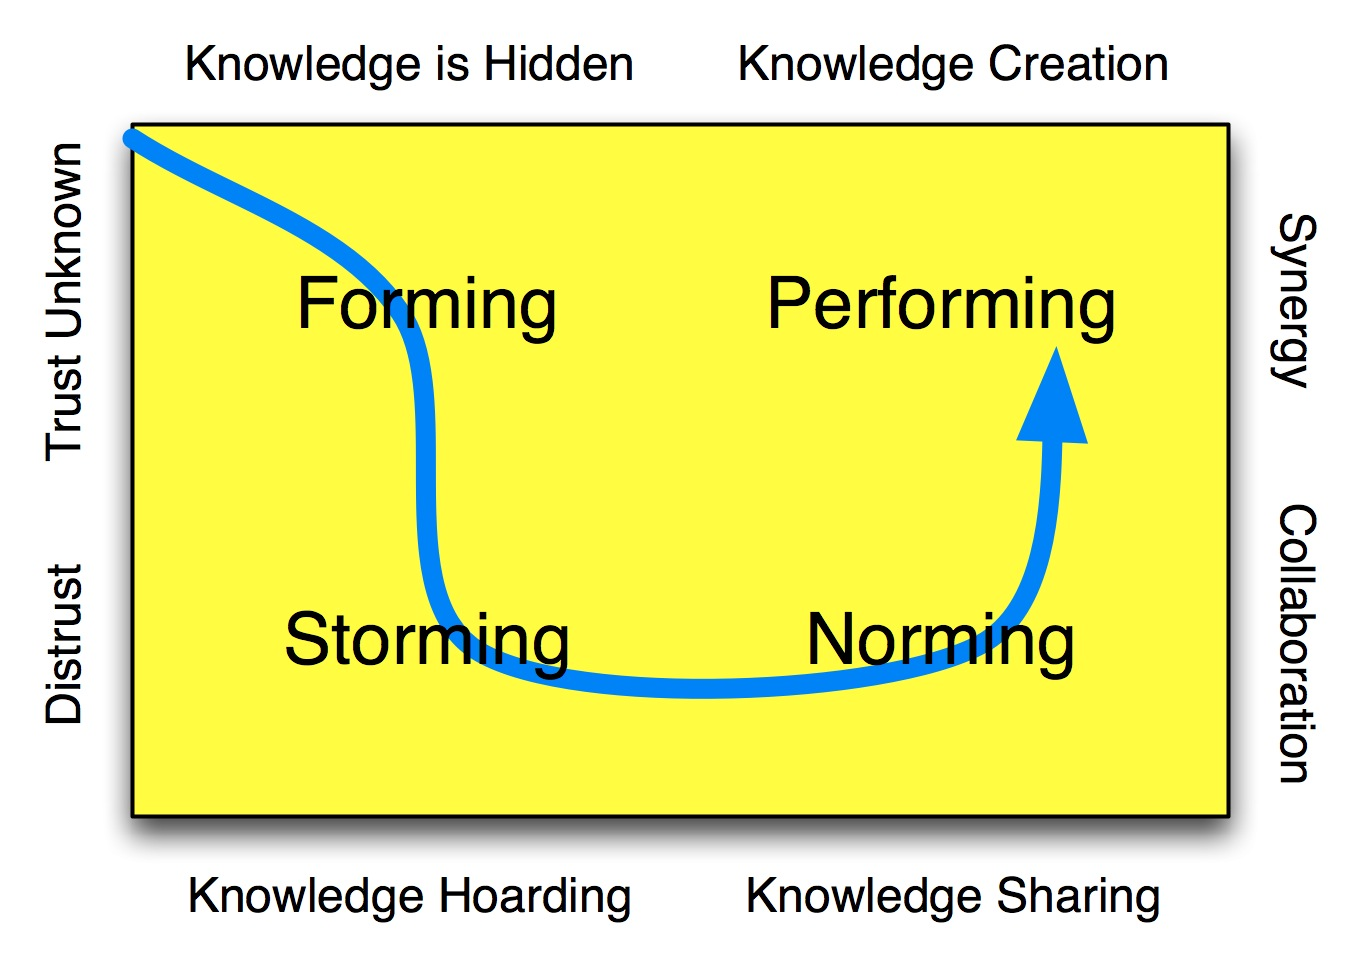 brucetuckman team development model This classic model of team development developed by bruce tuckman explores four distinct stages: forming, storming, norming, & performing.